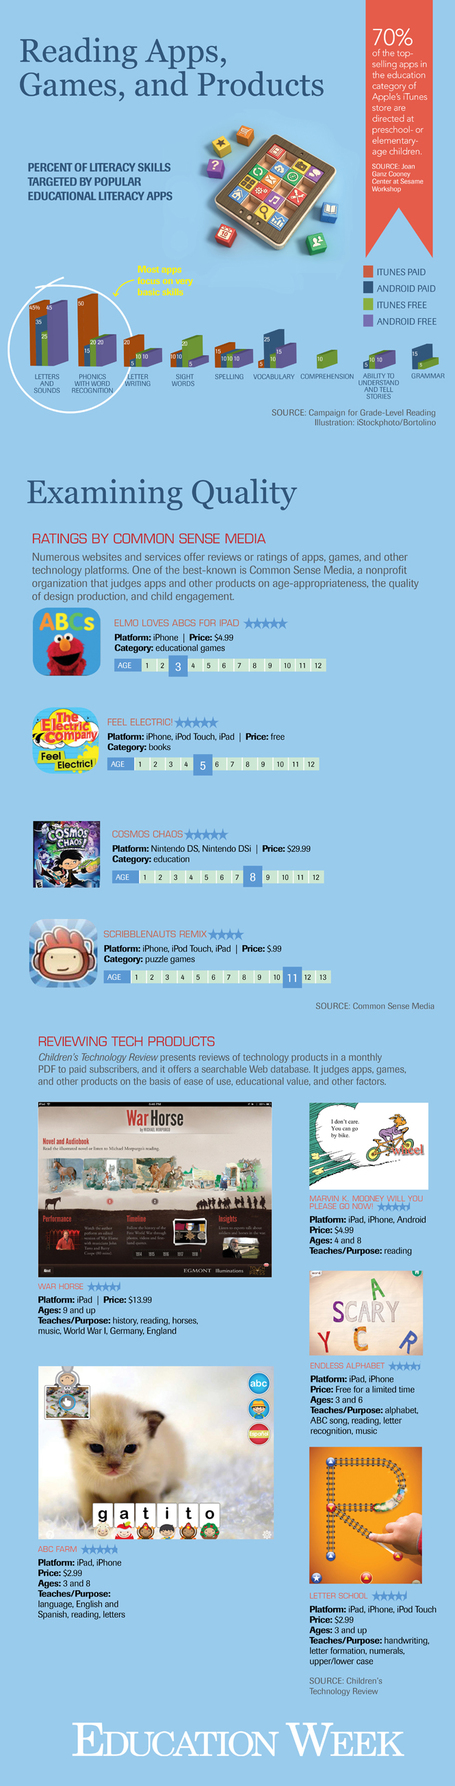 Mobile Apps for Elementary Students [Infographic] | AvatarGeneration | Scoop.it